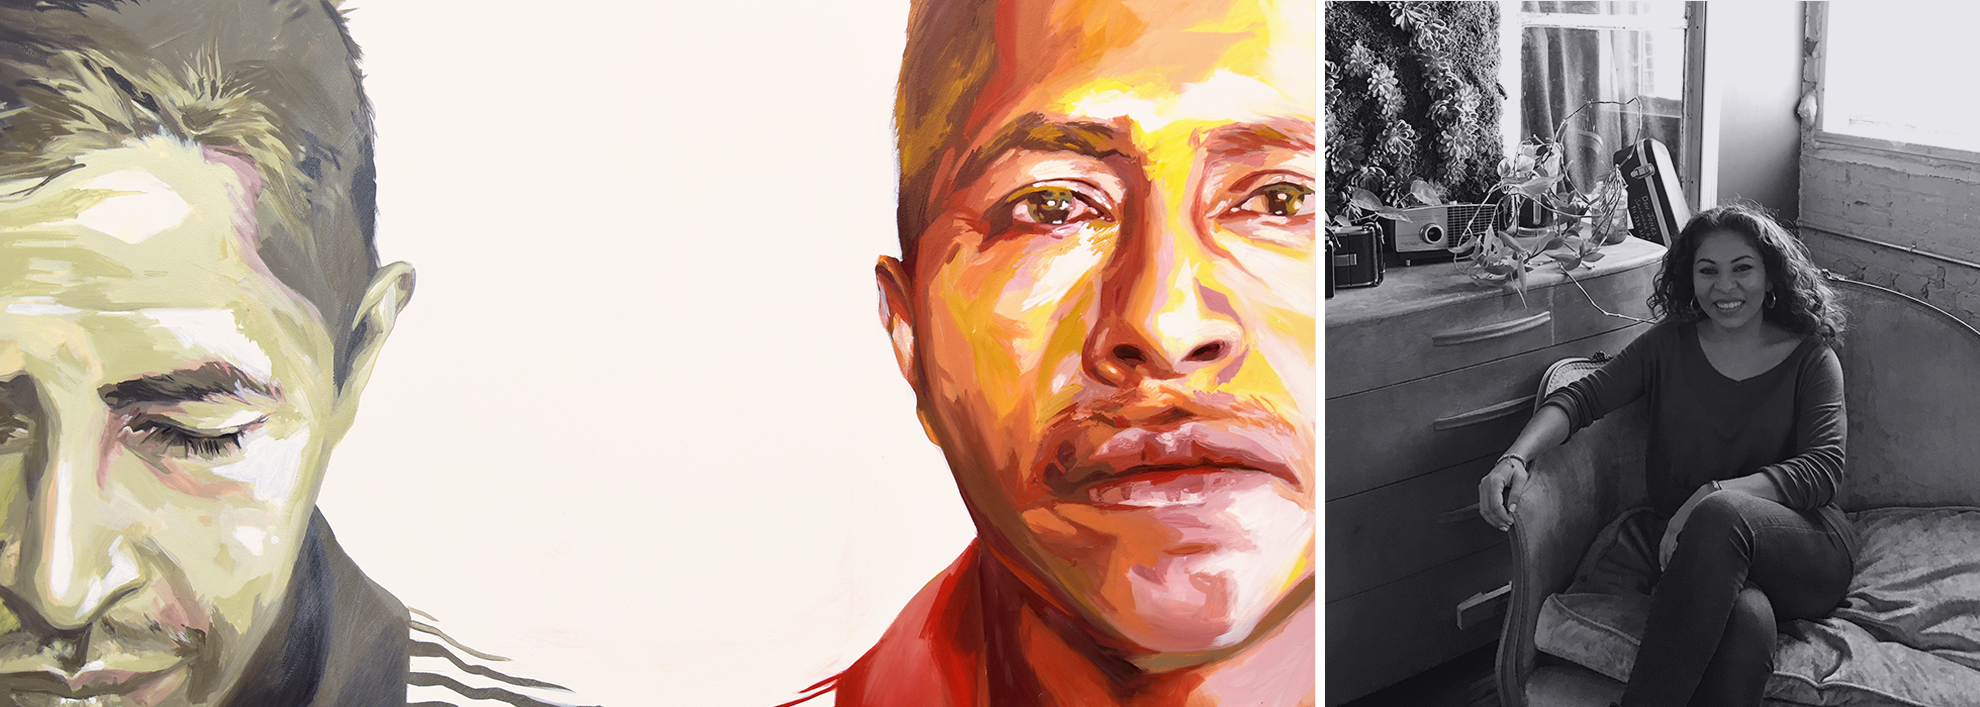 On the left, a painting of two male faces. On the right, Michelle Angela Ortiz.